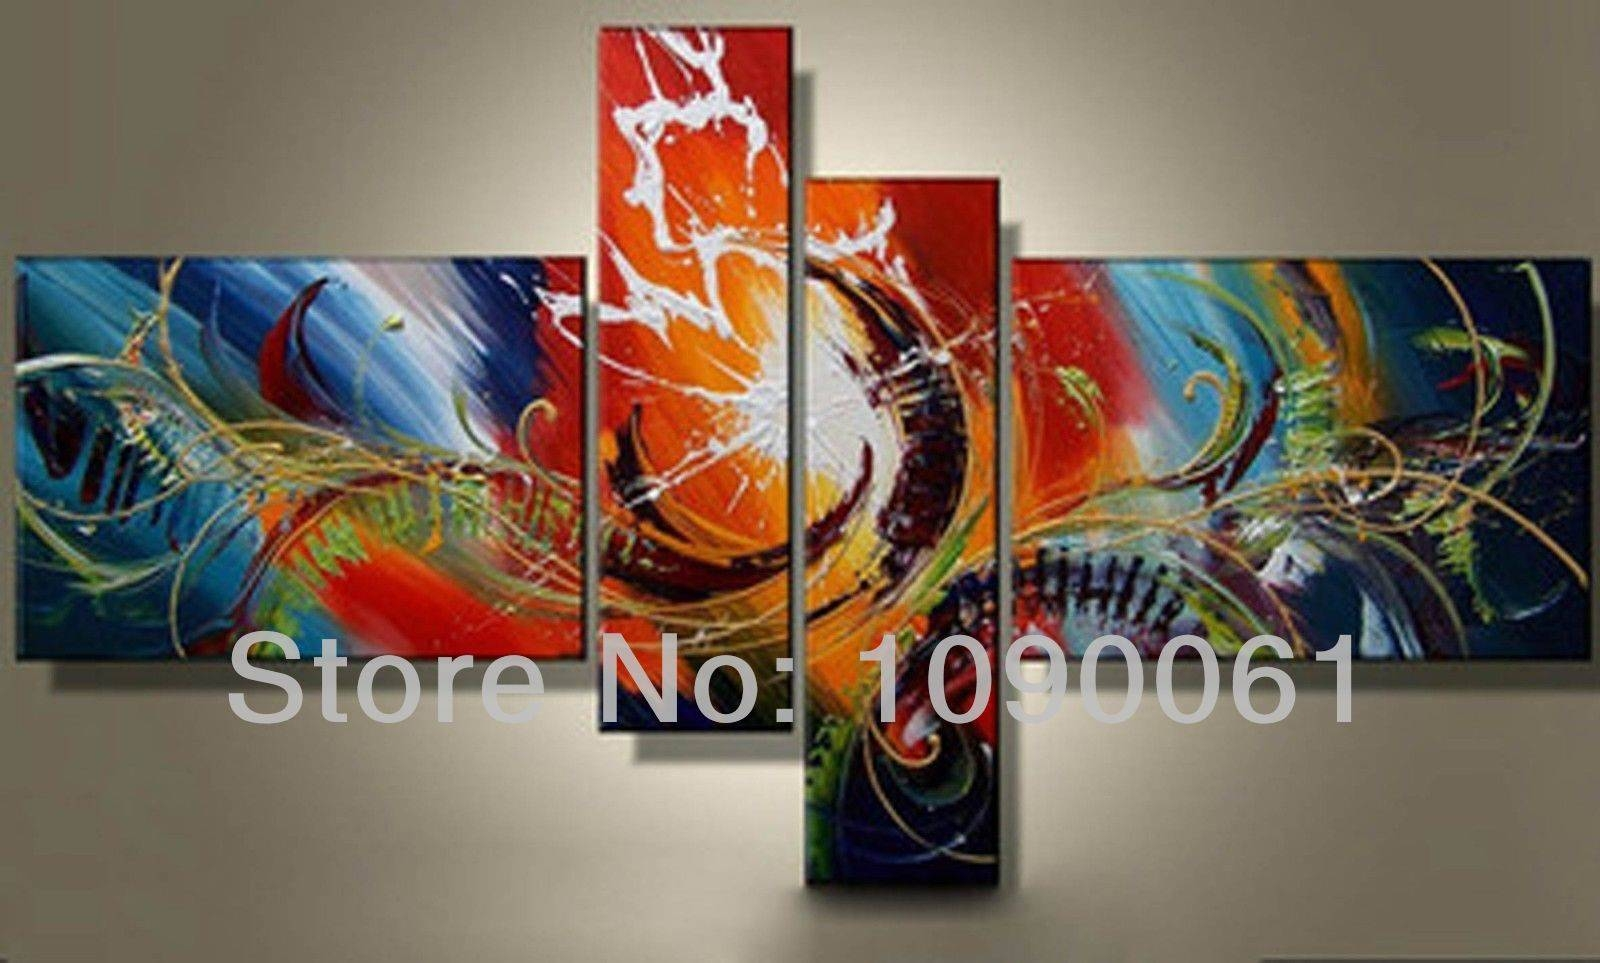 4 Piece Modern Abstract Red Black White Wall Art Decor Picture Intended For Most Popular 4 Piece Wall Art Sets (View 3 of 20)